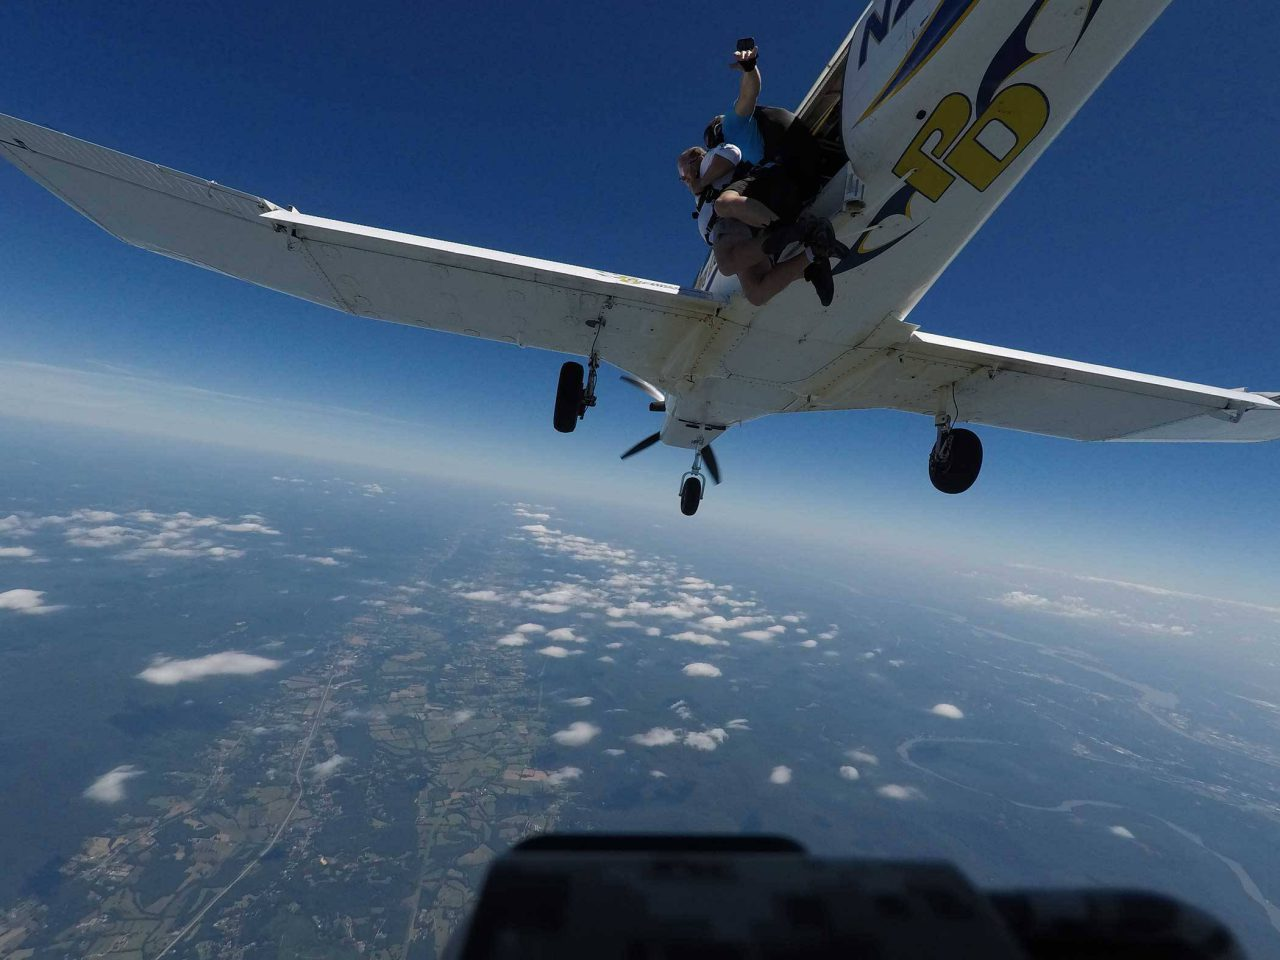 Man takes the leap from Chattanooga Skydiving aircraft